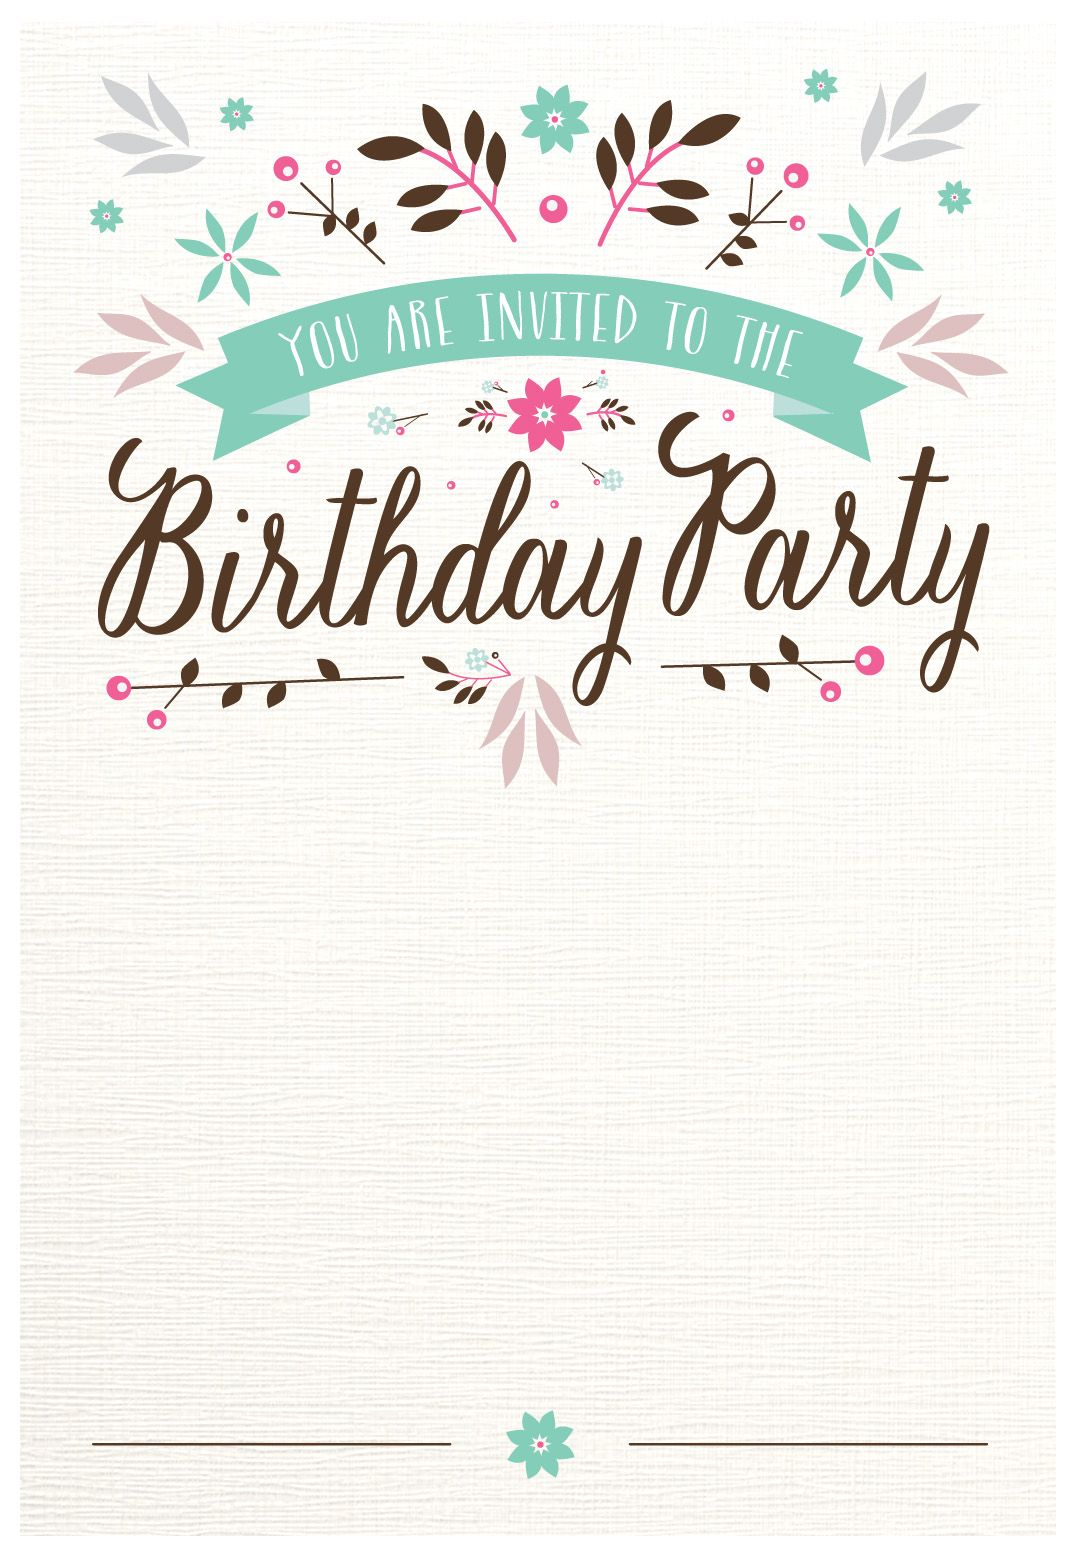 free birthday invitation templates for adults - flat floral free printable birthday invitation template